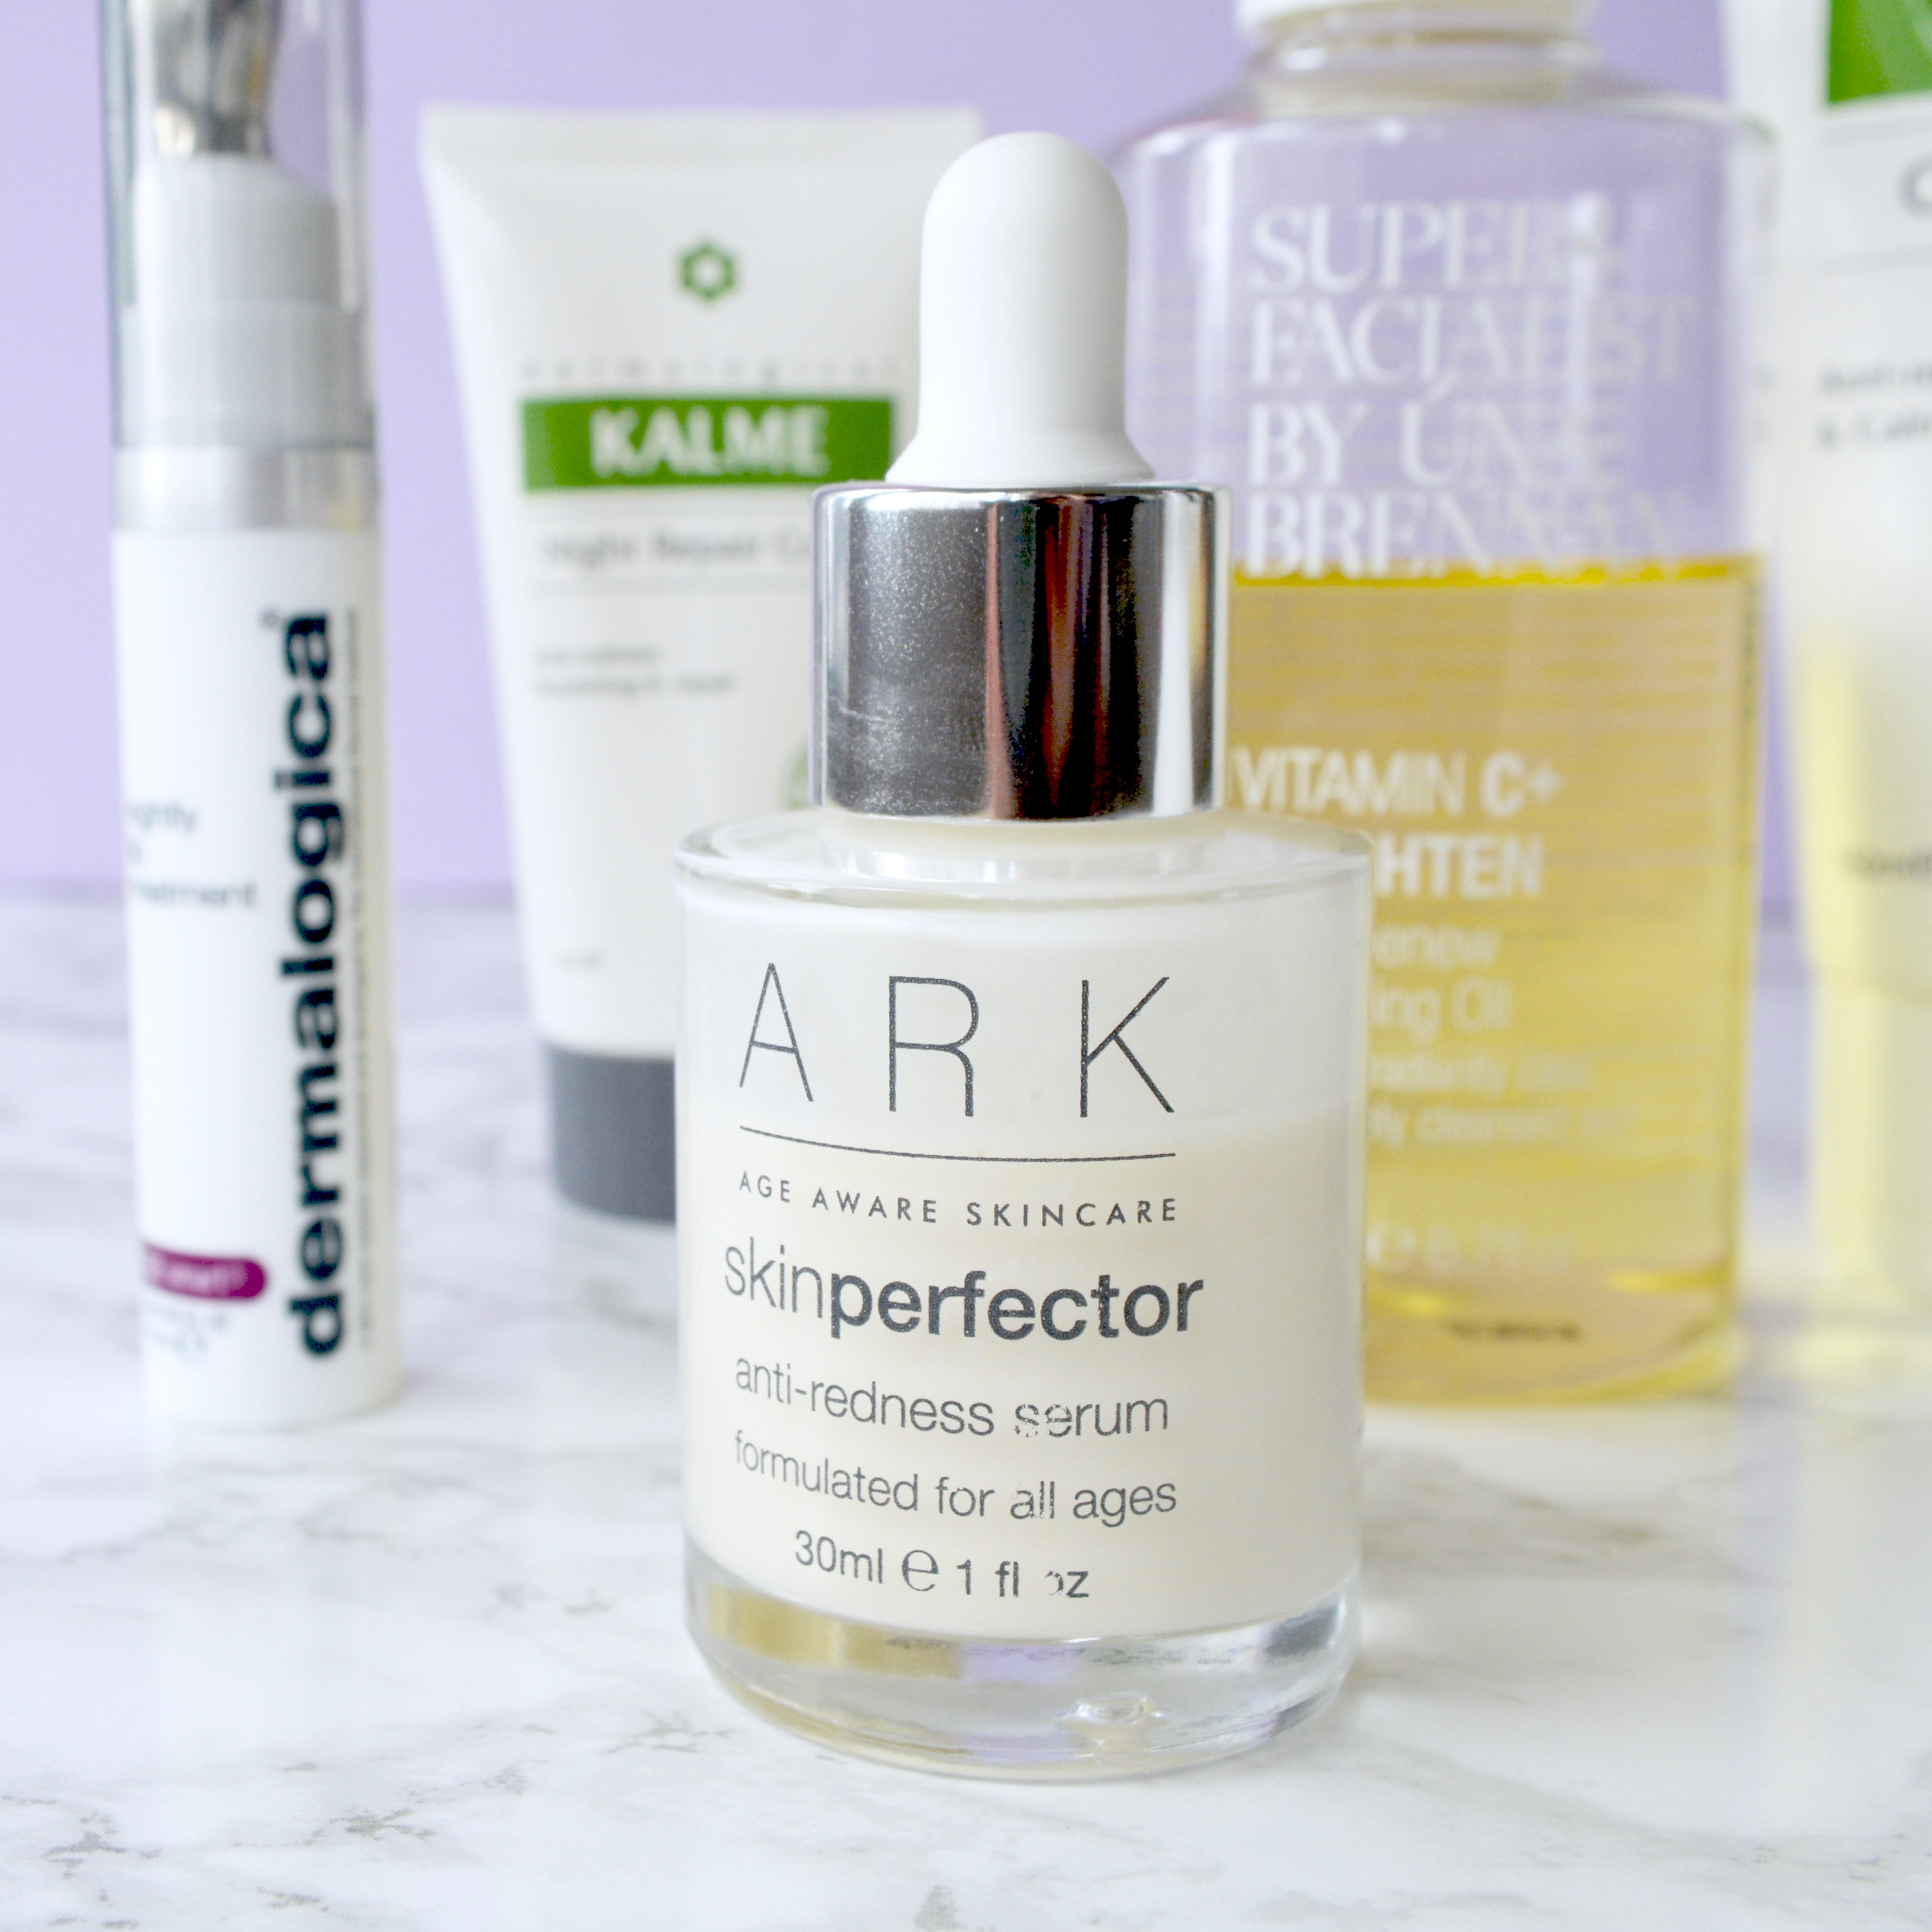 Skincare Shake Up: ARK skin perfector serum. Great recommendations for rosacea/sensitive skin